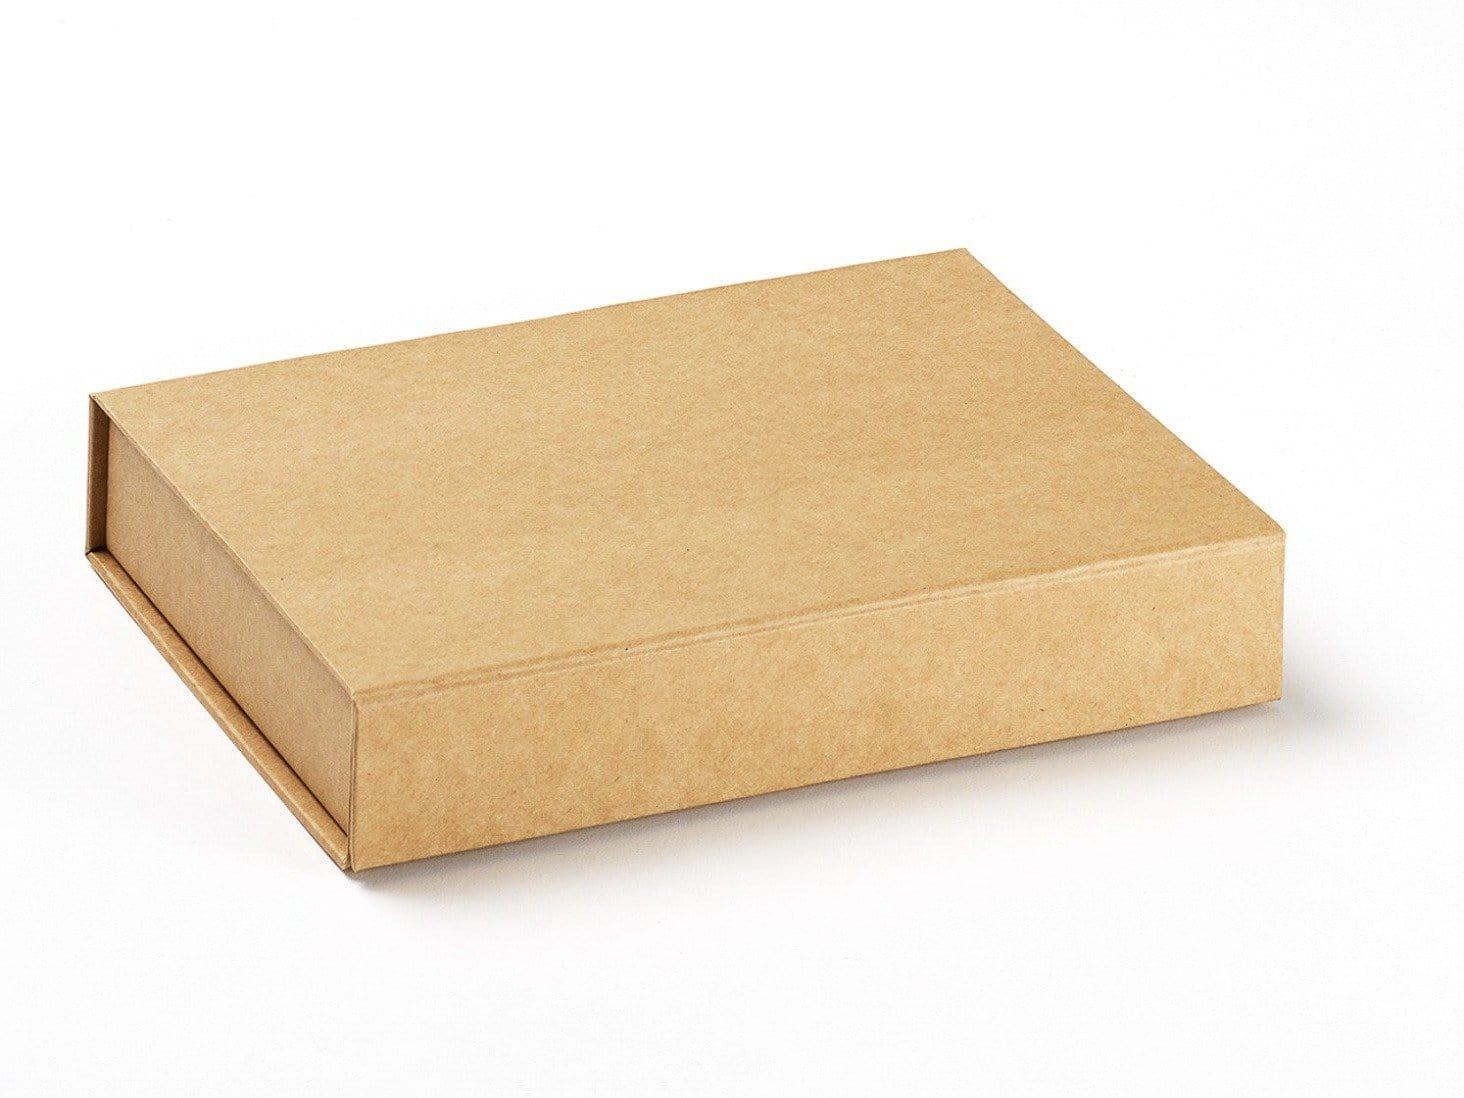 Foldabox UK A5 Shallow Natural Kraft Luxury Gift Box Sample